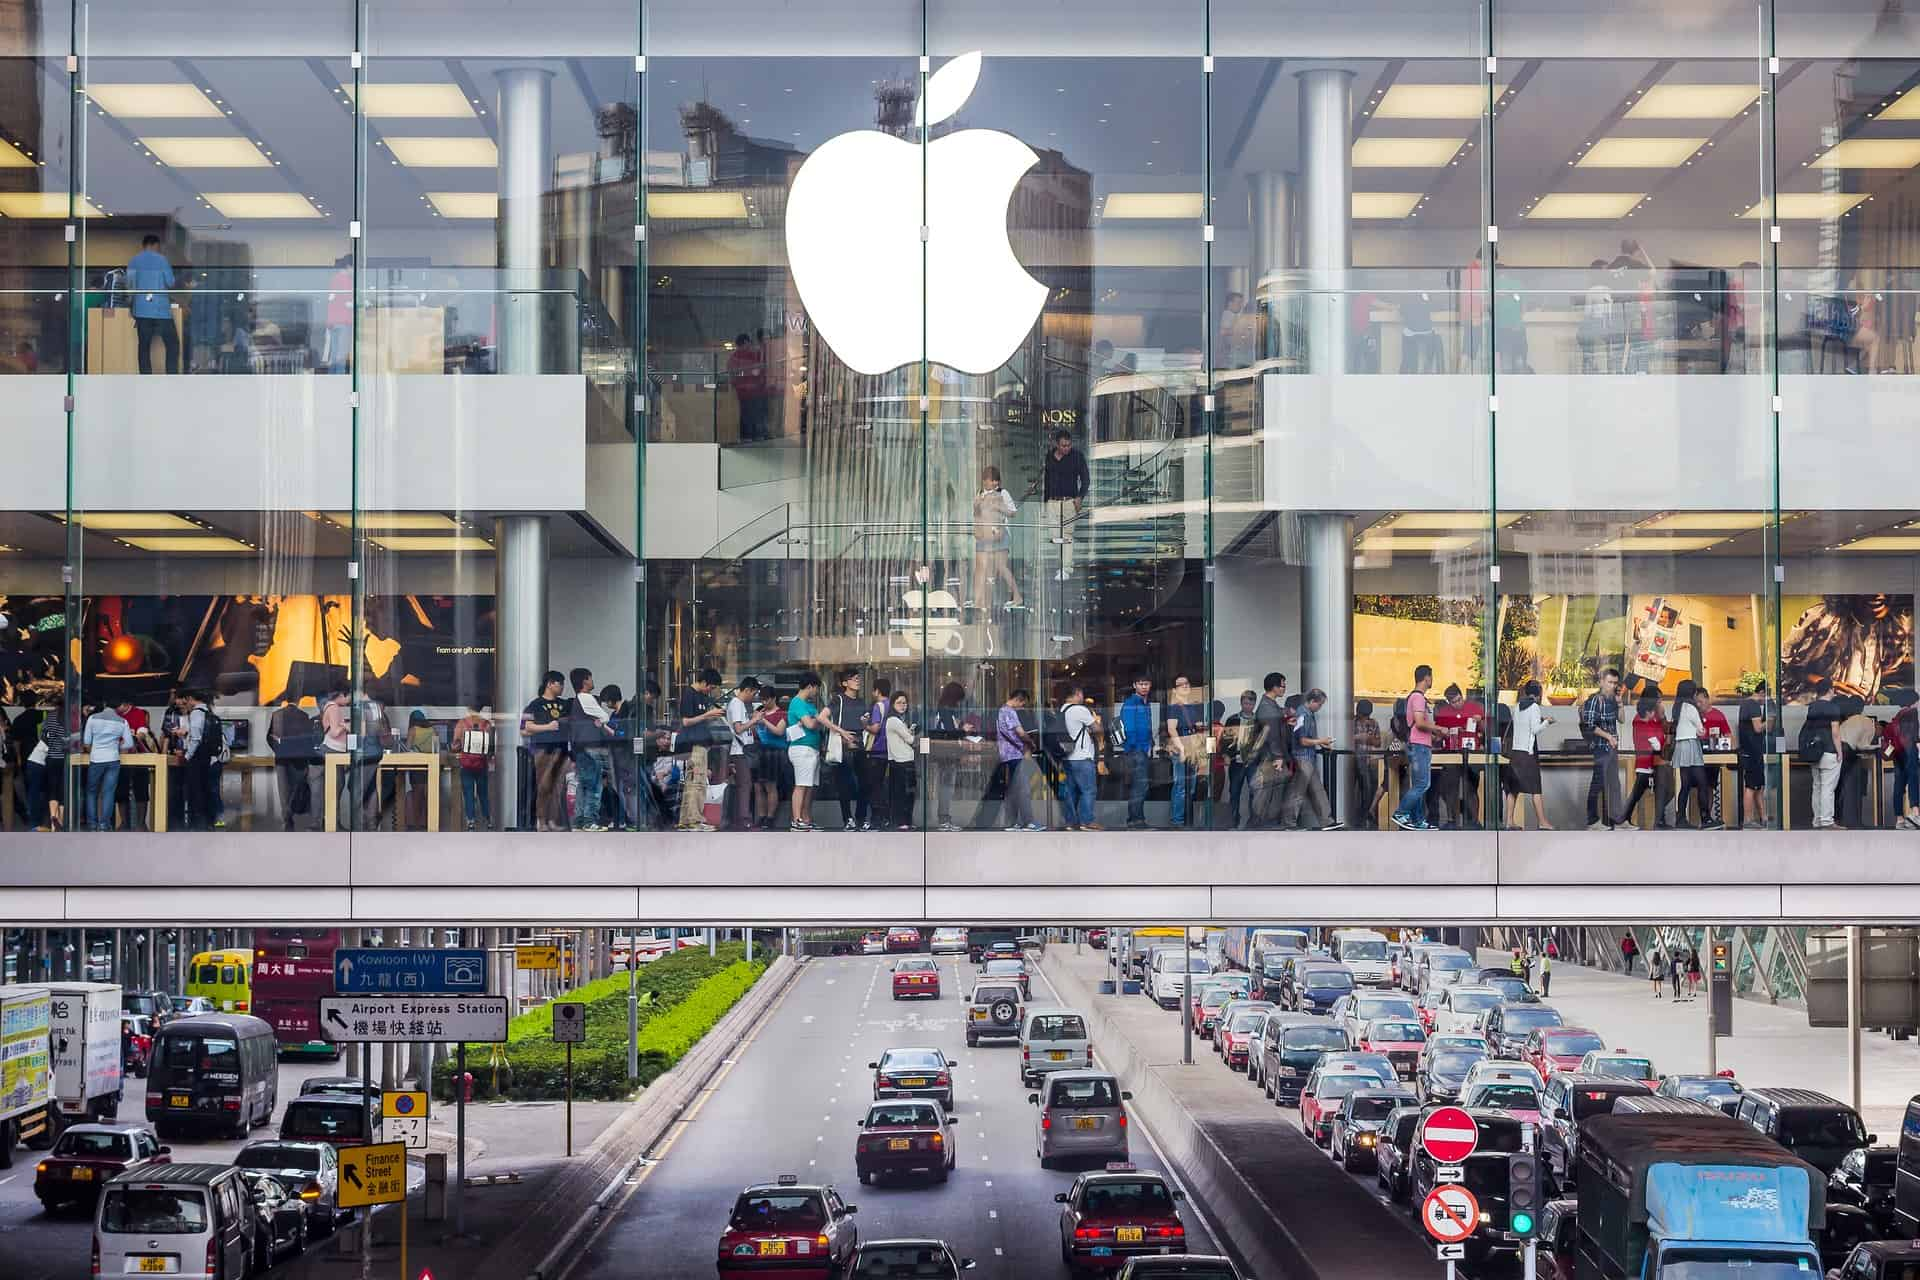 The Cheapest Places in the World to Buy Apple Devices